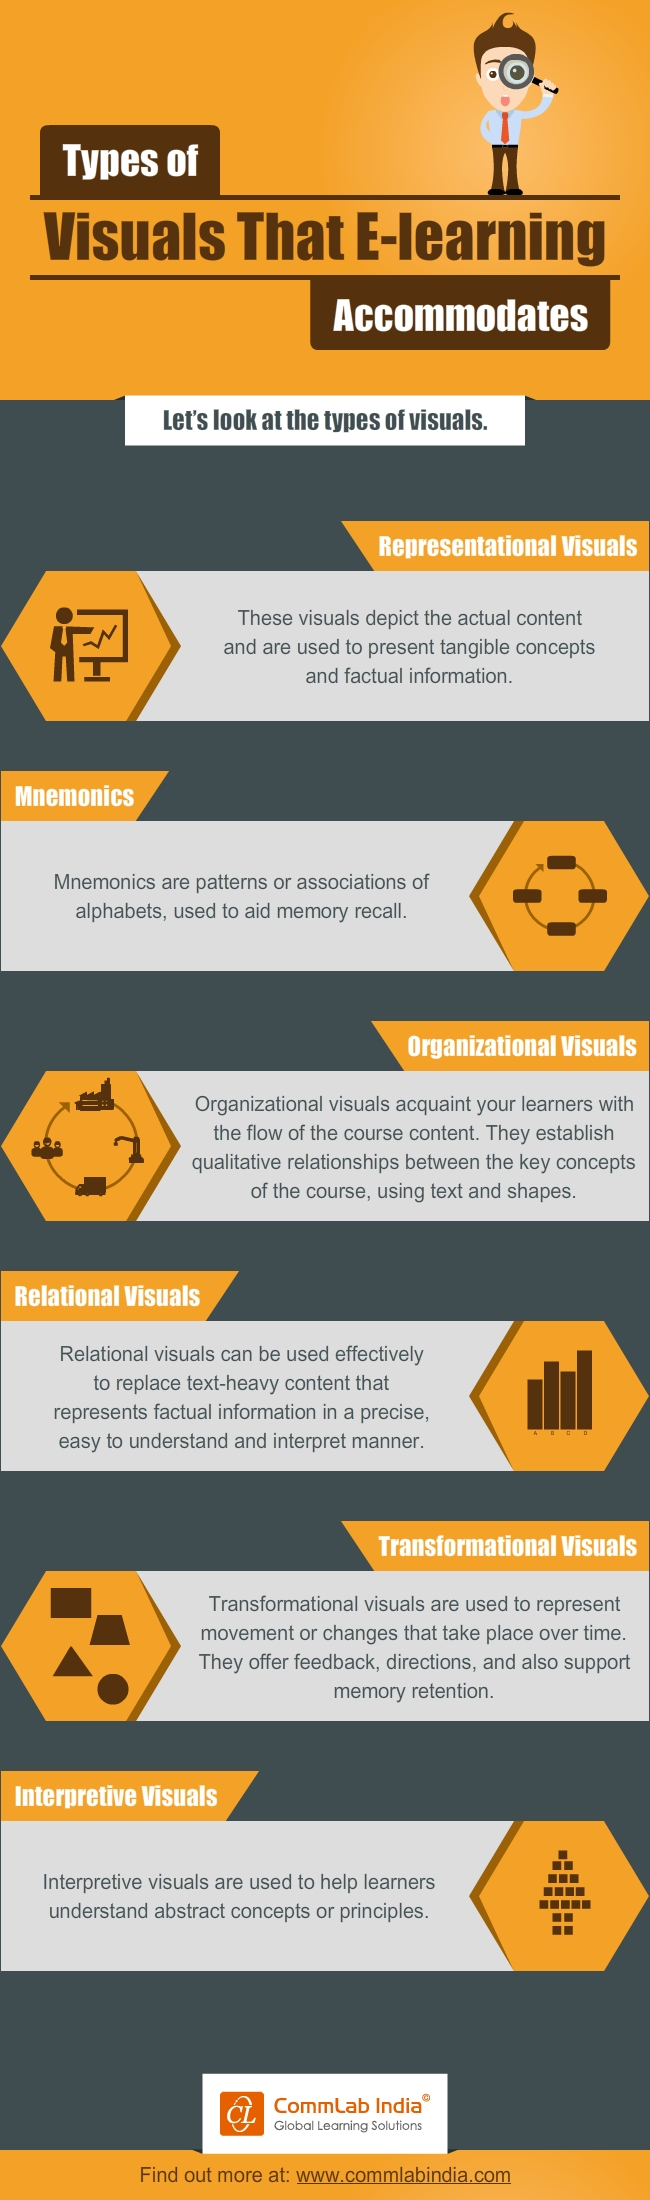 Types of Visuals E-learning Supports [Infographic]